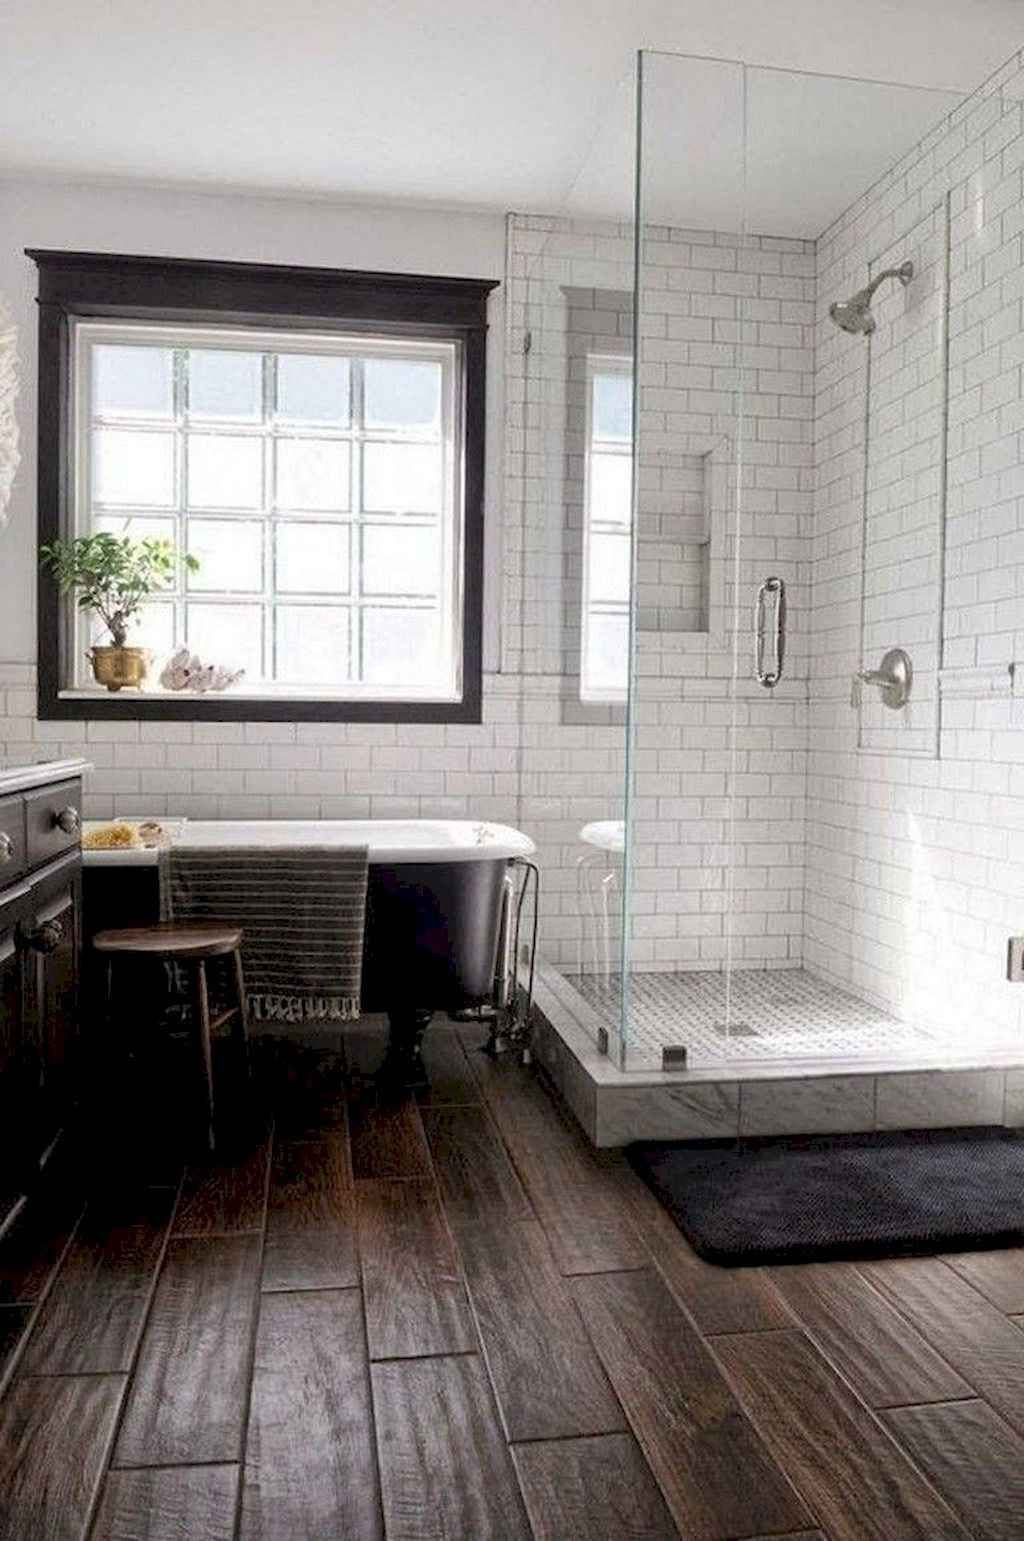 insane farmhouse shower tiles remodel ideas 08 in 2020 on beautiful farmhouse bathroom shower decor ideas and remodel an extraordinary design id=14910